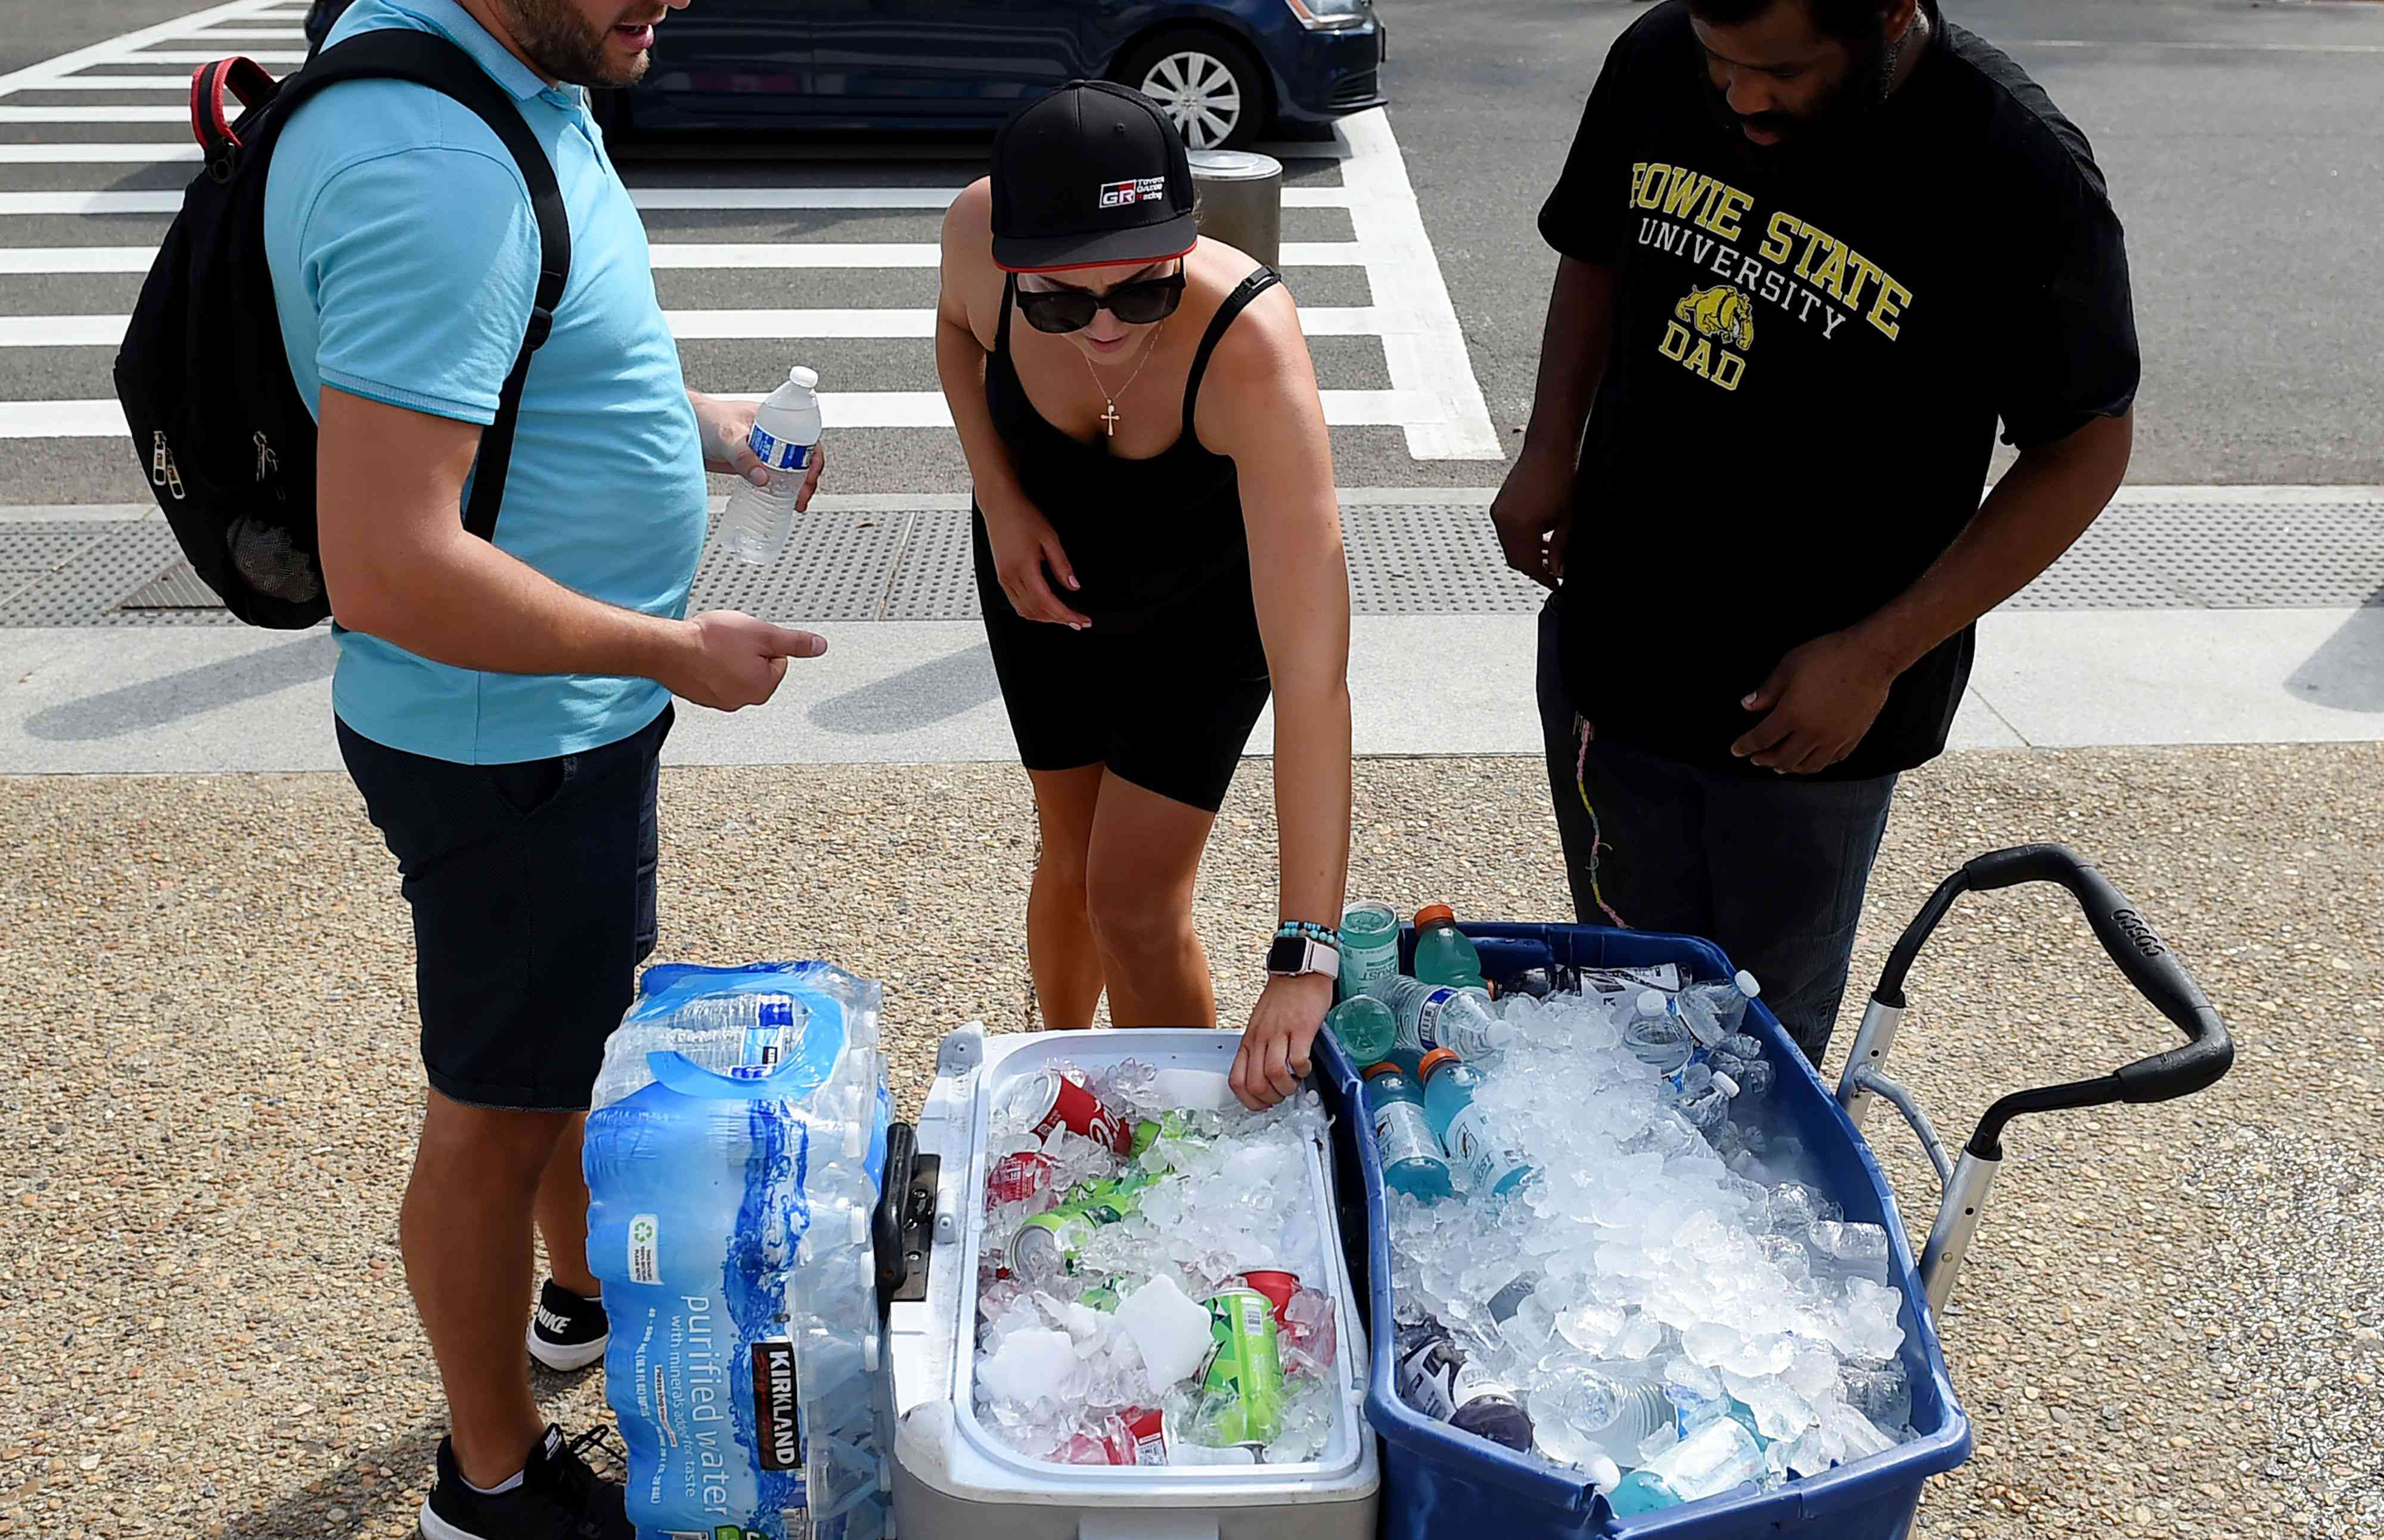 People getting cold drinks from a cooler